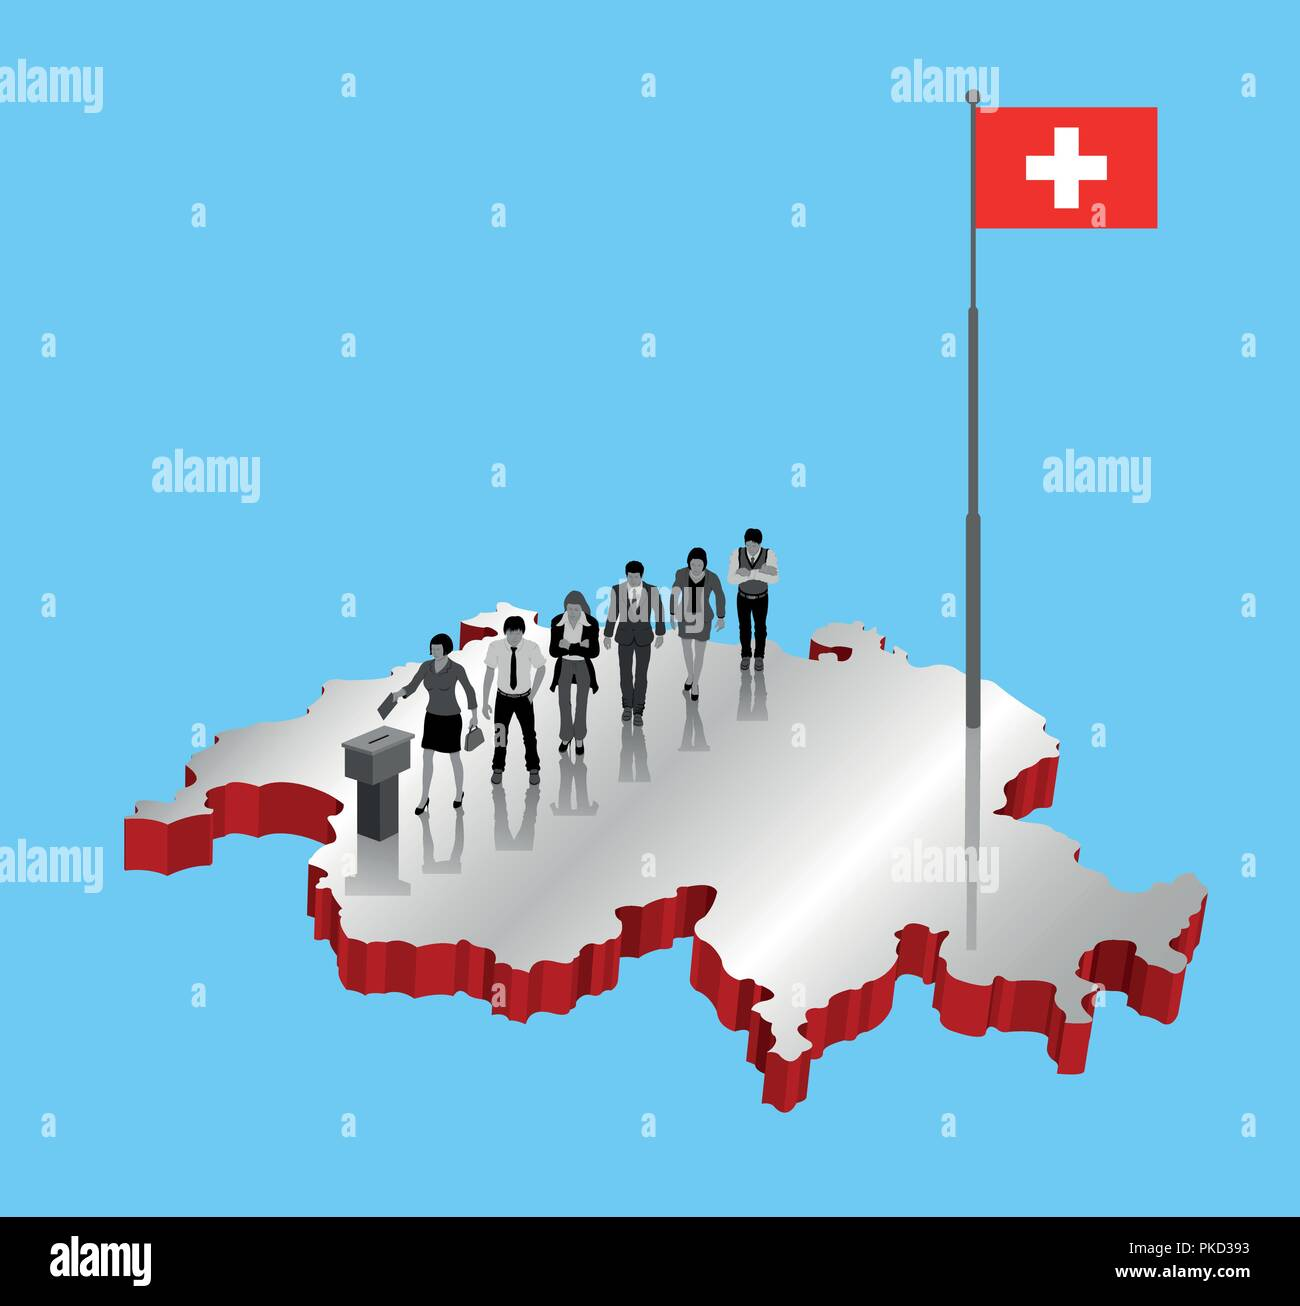 Swiss citizens voting for Switzerland referendum over an 3D map with Flagpole. All the objects, shadows and background are in different layers. - Stock Vector